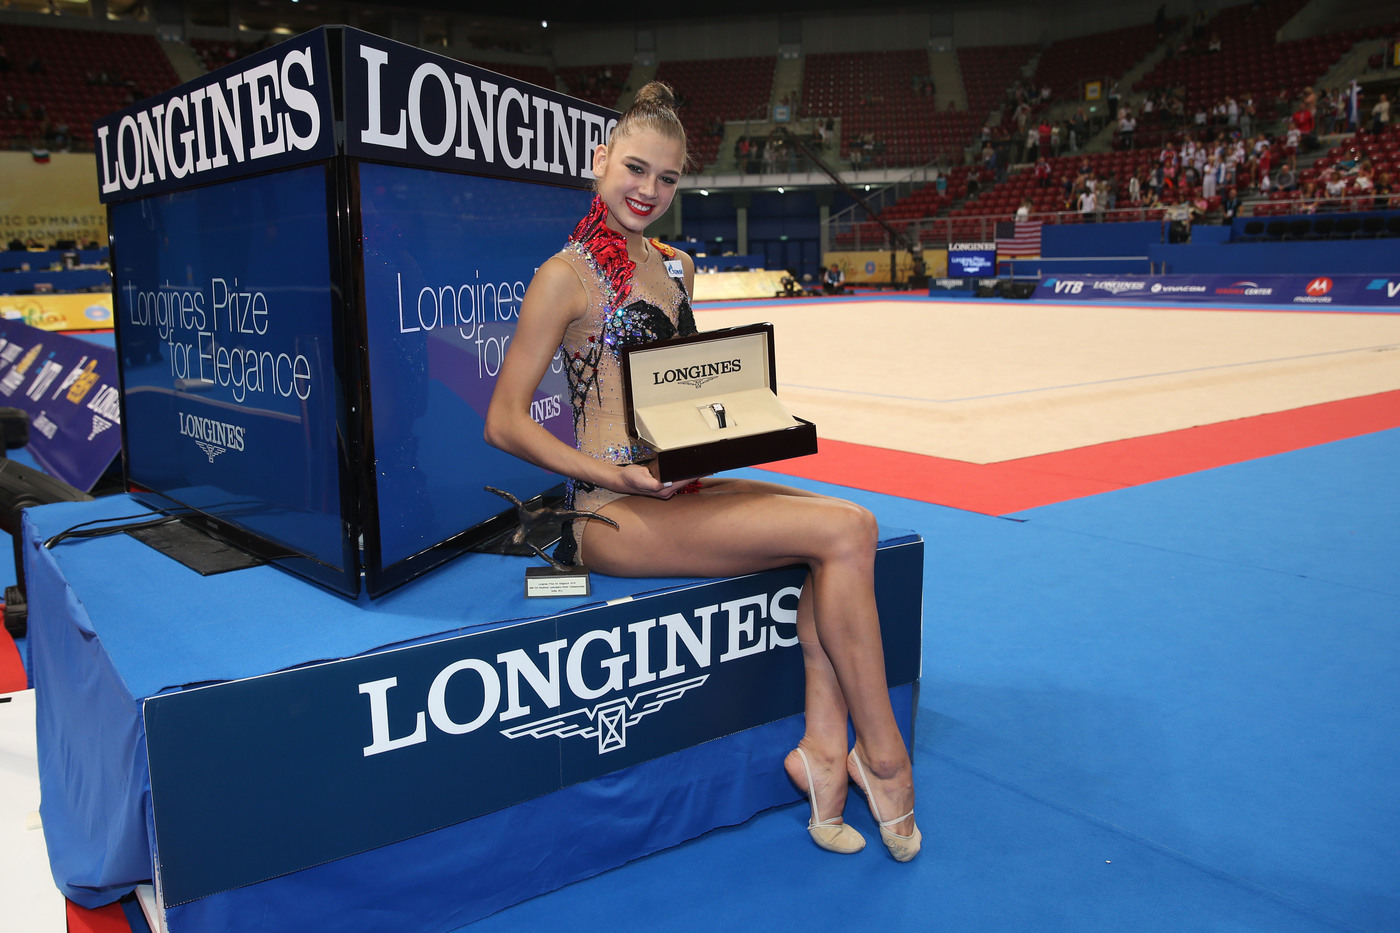 Longines Gymnastics Event: The Longines Prize for Elegance awarded to Aleksandra Soldatova at the 36th Rhythmic Gymnastics World Championships in Sofia 1